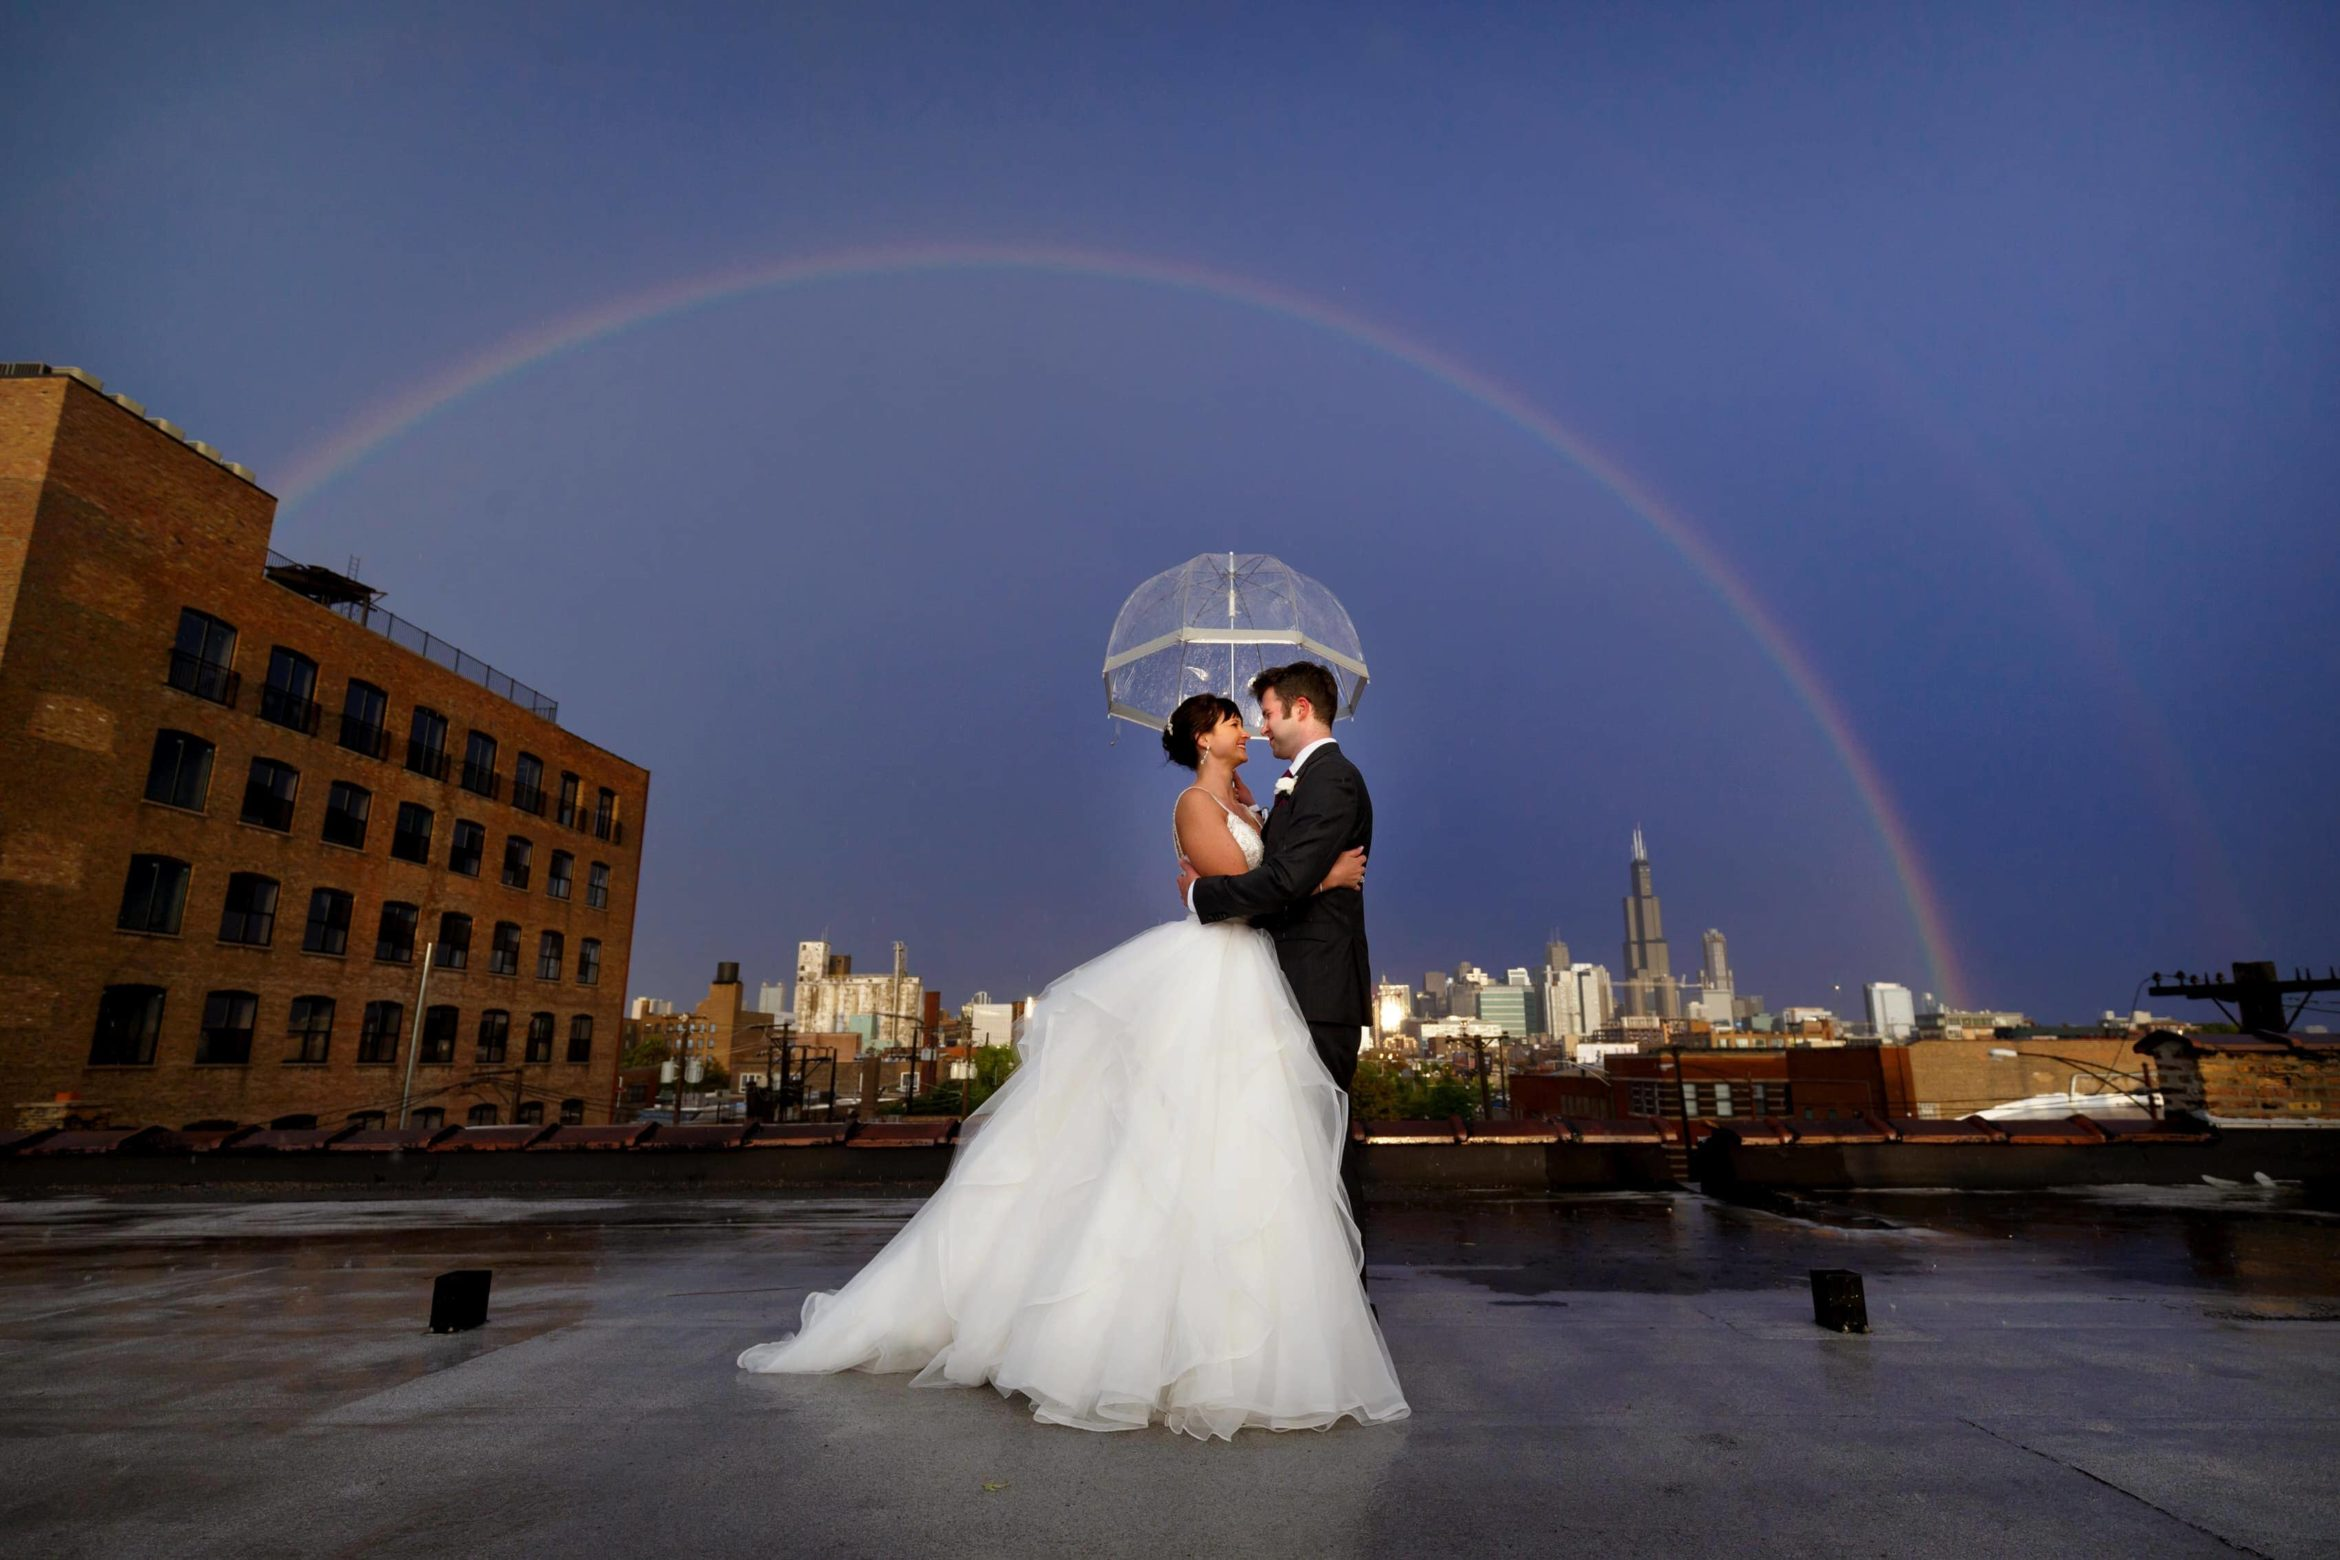 bride-and-groom-pose-for-a-wide-angle-chicago-skyline-rainbow-wedding-photo-under-an-umbrella-on-the-rooftop-of-Room-1520-35